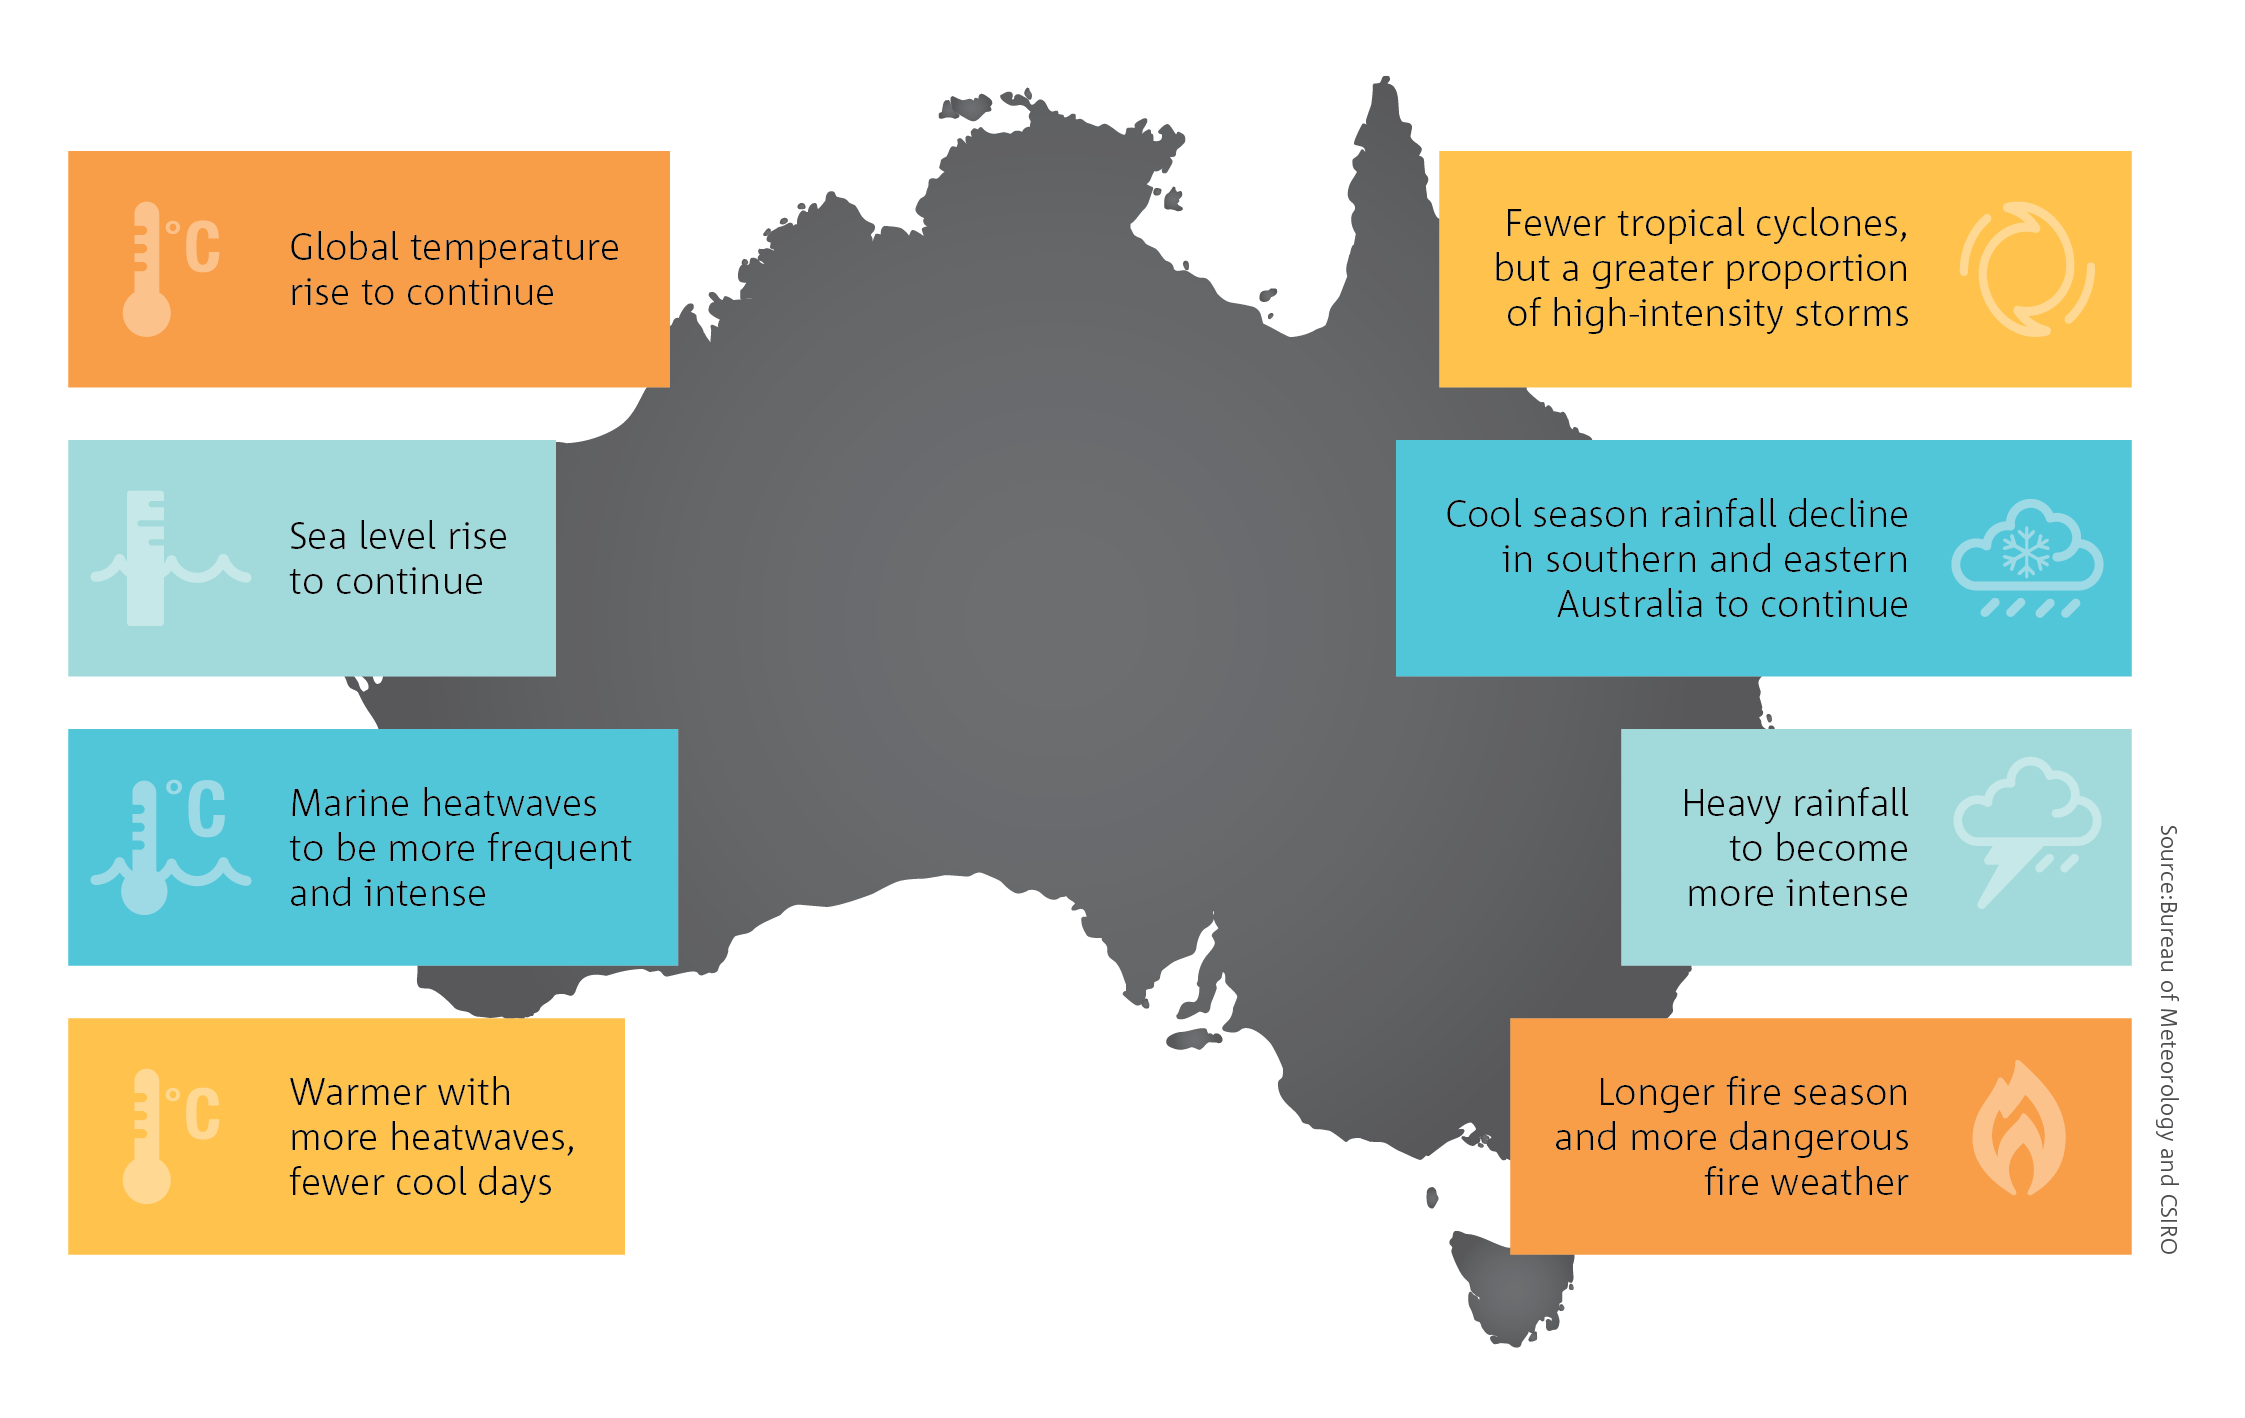 CSIRO publishes data on projected climate change factors